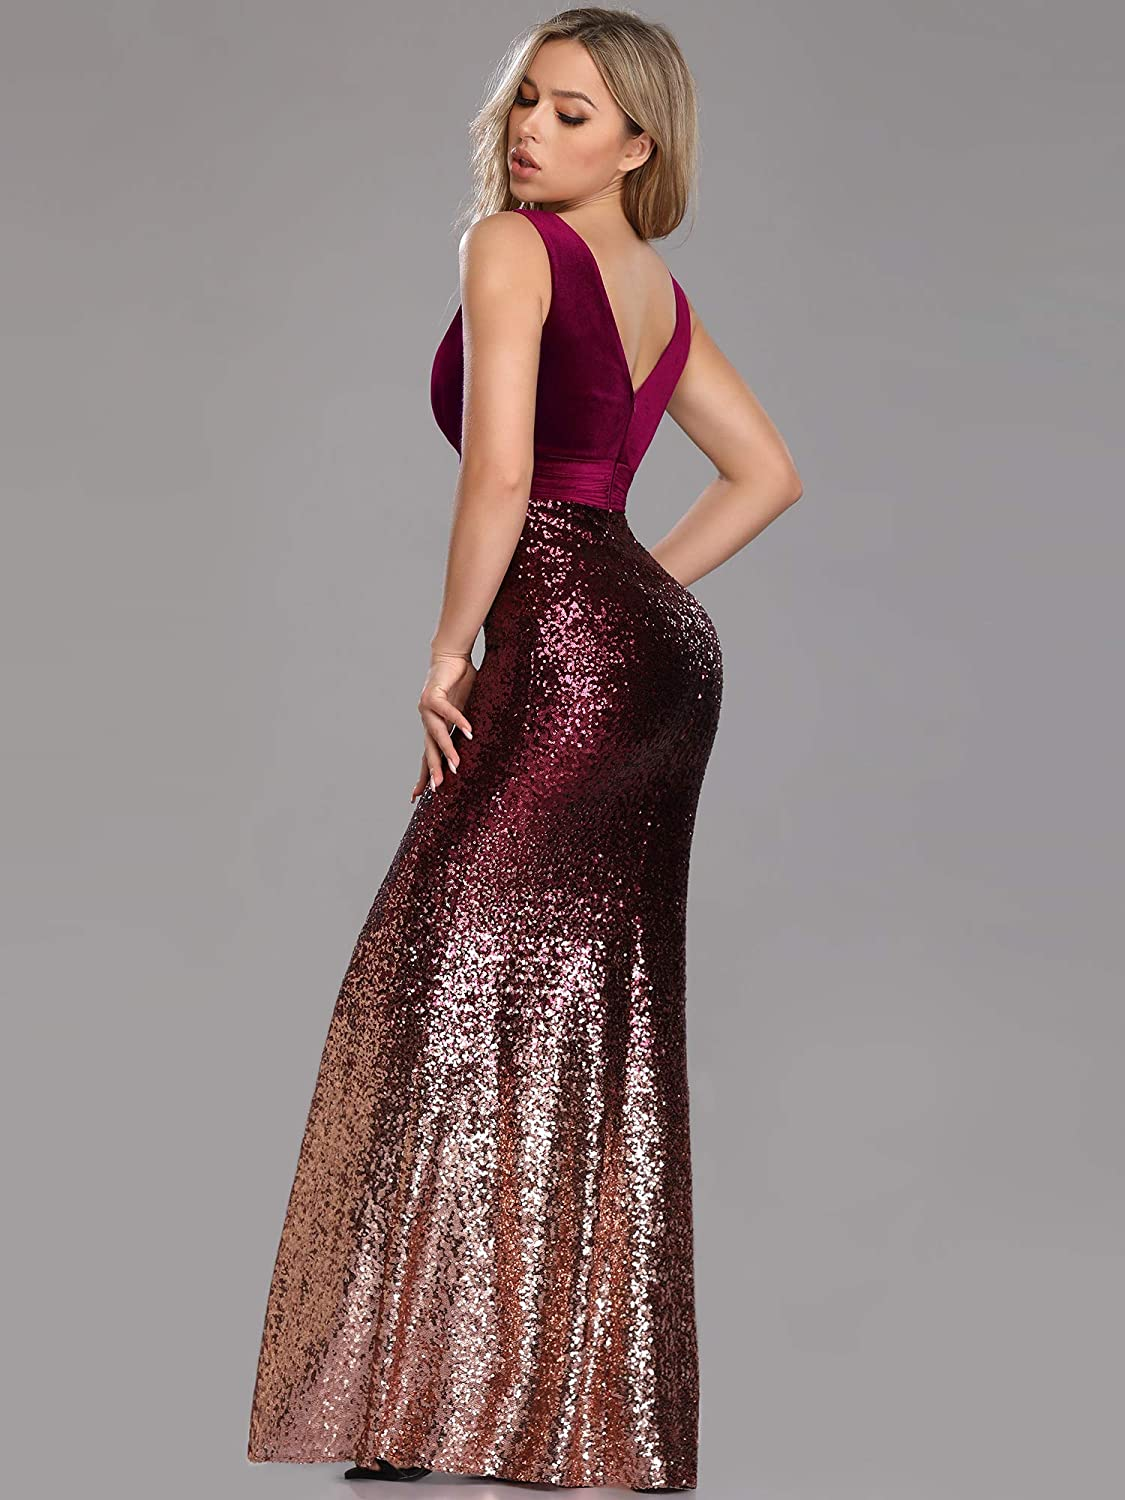 0cb9f22d5a6 Ever-Pretty Women Sparkling Gradual Champagne Gold Sequin Mermaid Cap  Sleeves Evening Dress Prom Dress 08999 at Amazon Women s Clothing store